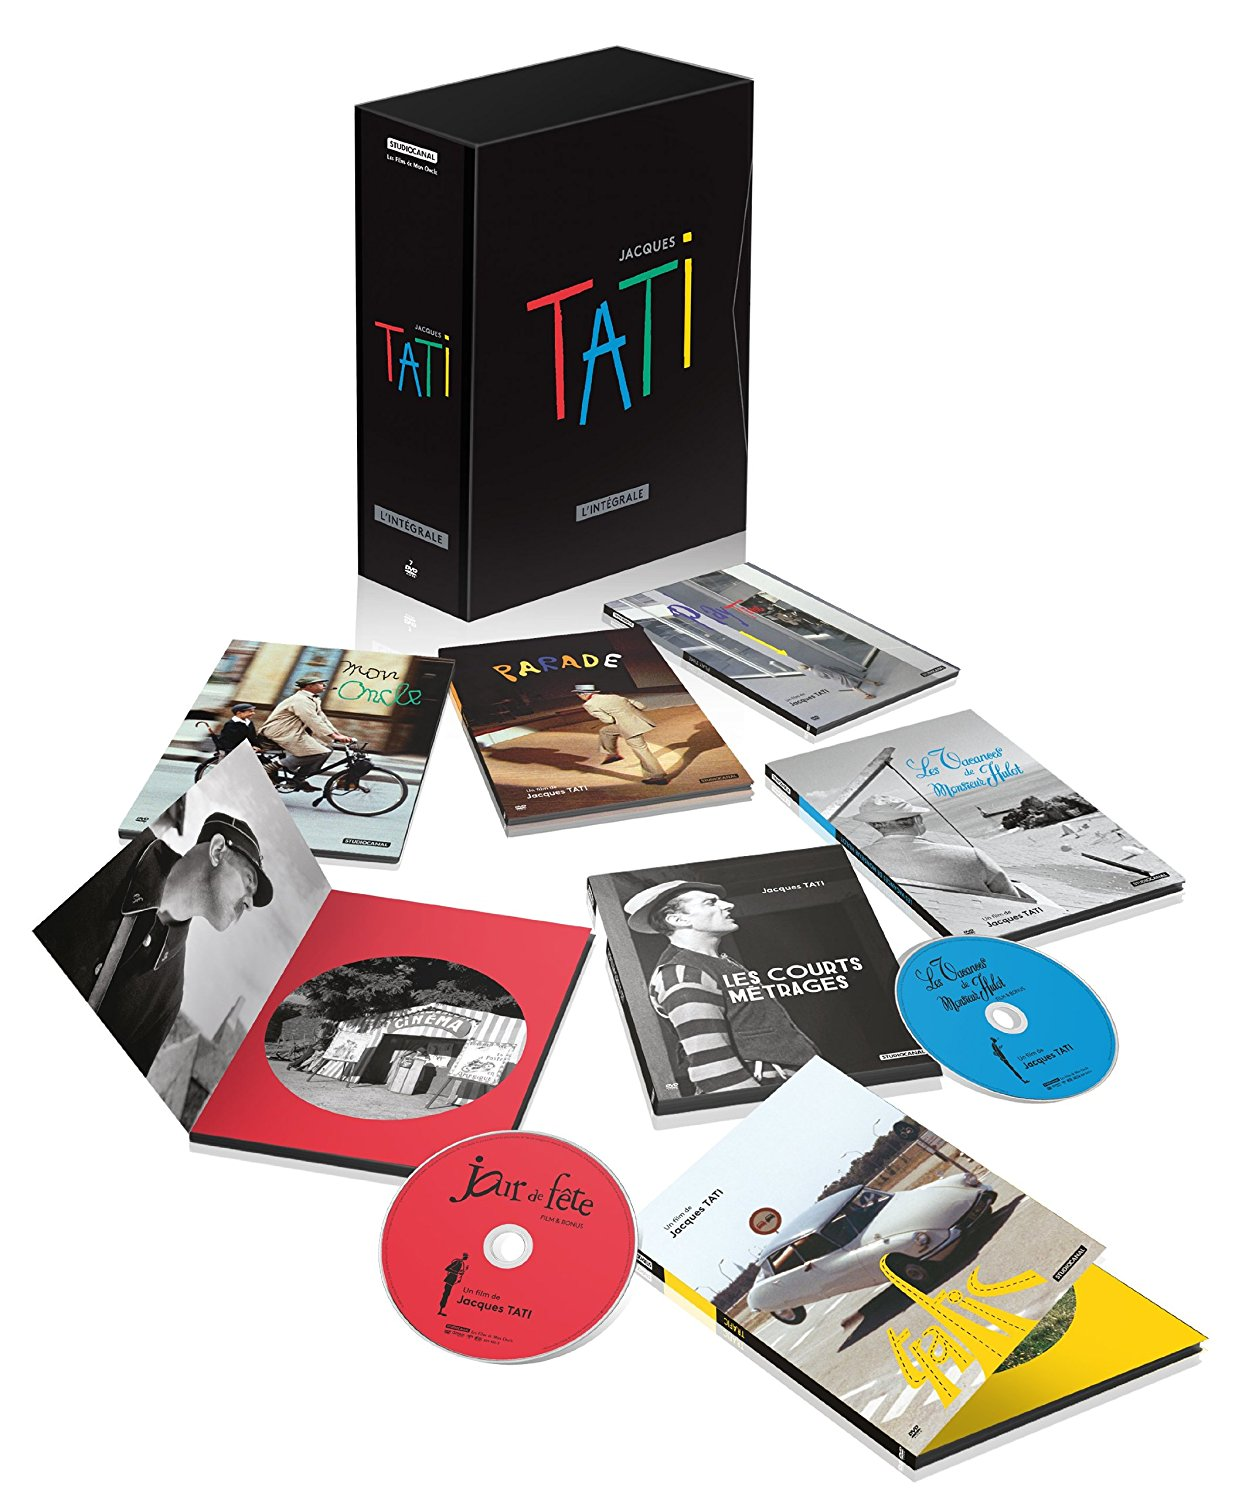 JACQUES TATI COFFRET INTEGRALE